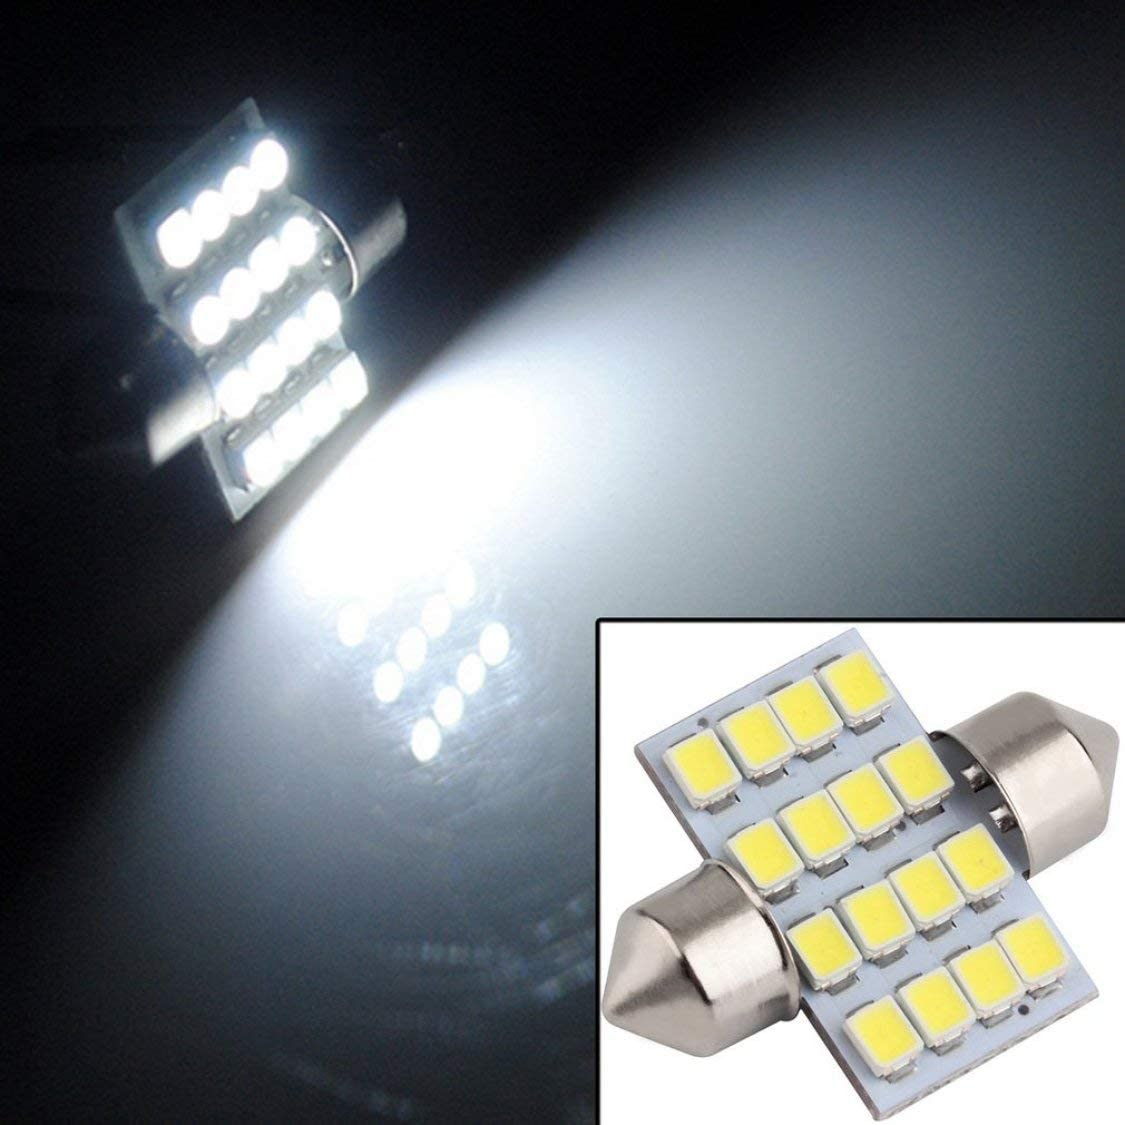 16 SMD LED 1210 31mm Auto Interior Dome Festoon Bulb Car Light Reading Lamp White DC 12V Vehicle Lamp Door Light Source